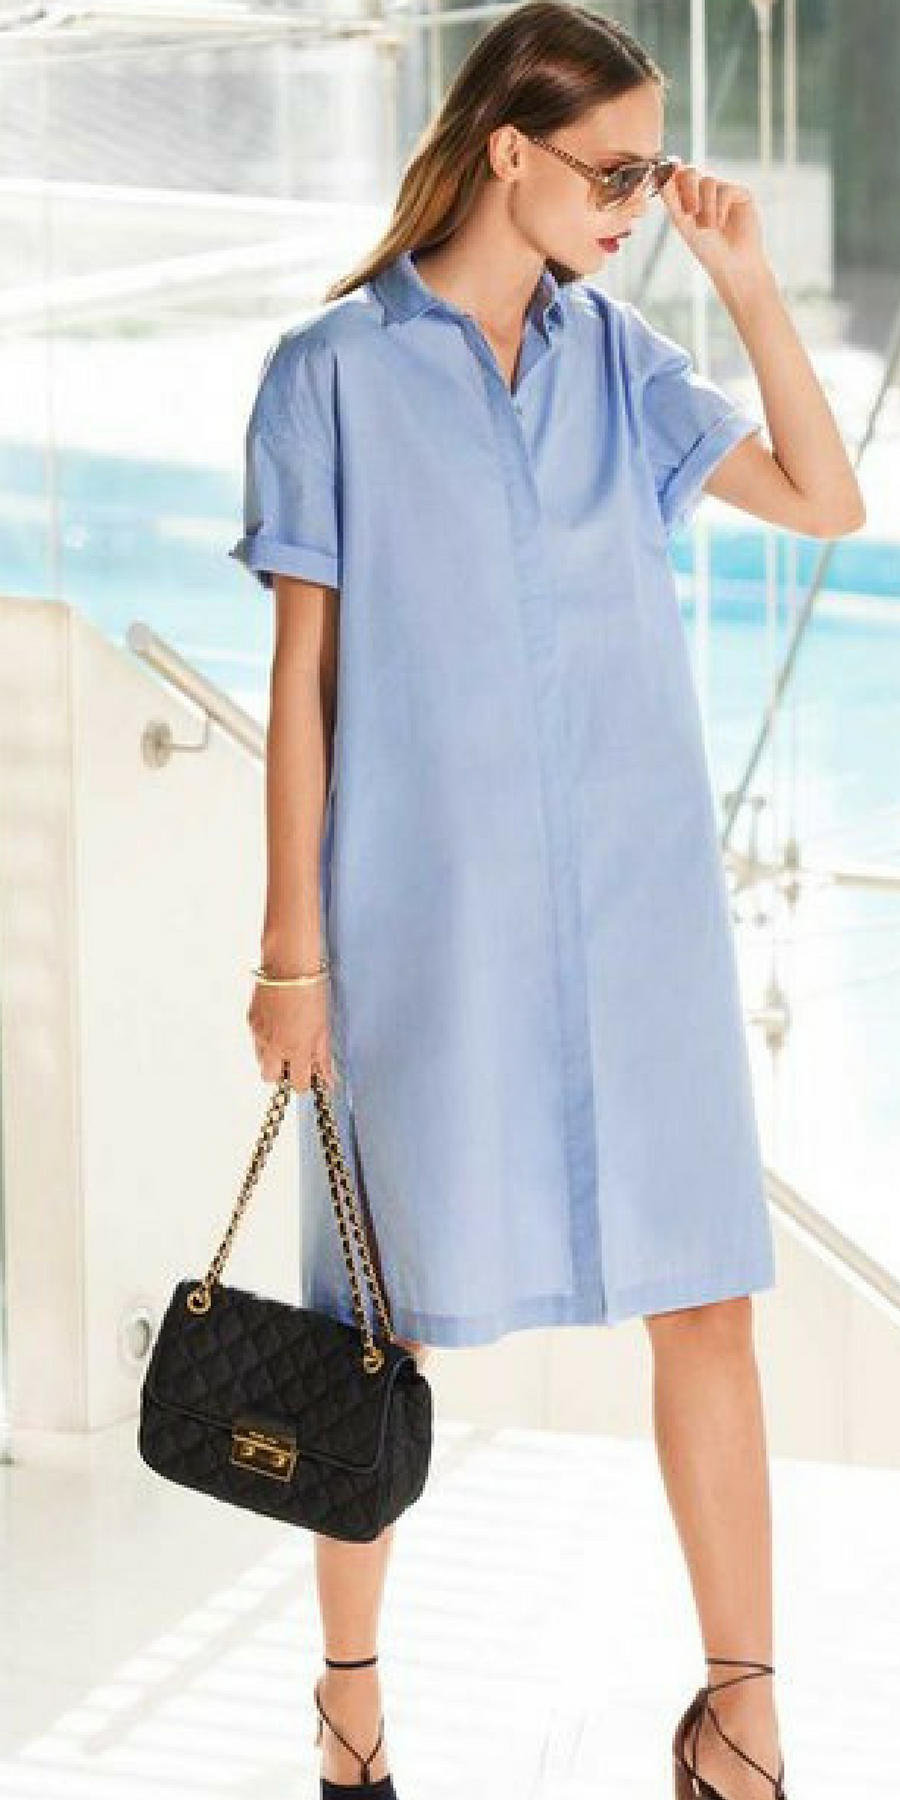 Womenus shirt dress sewing pattern available for download this